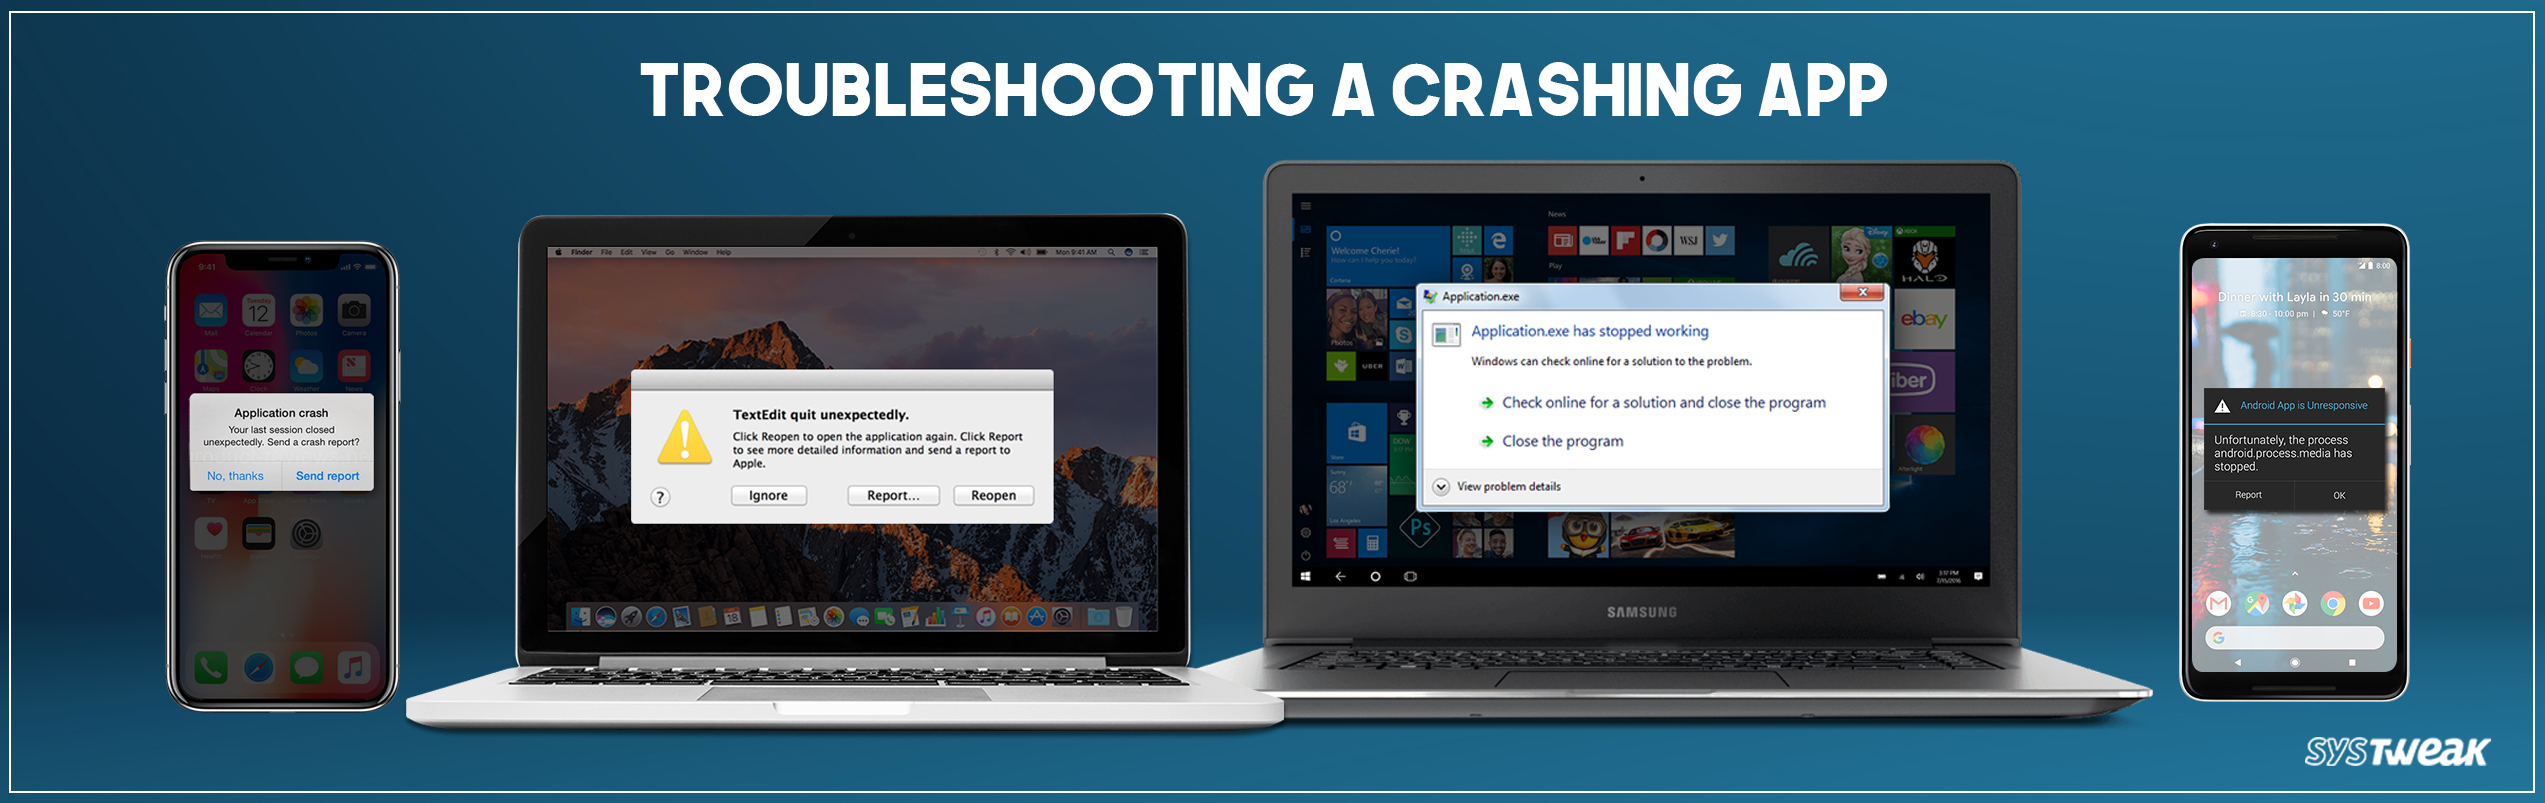 How To Fix Crashing Apps